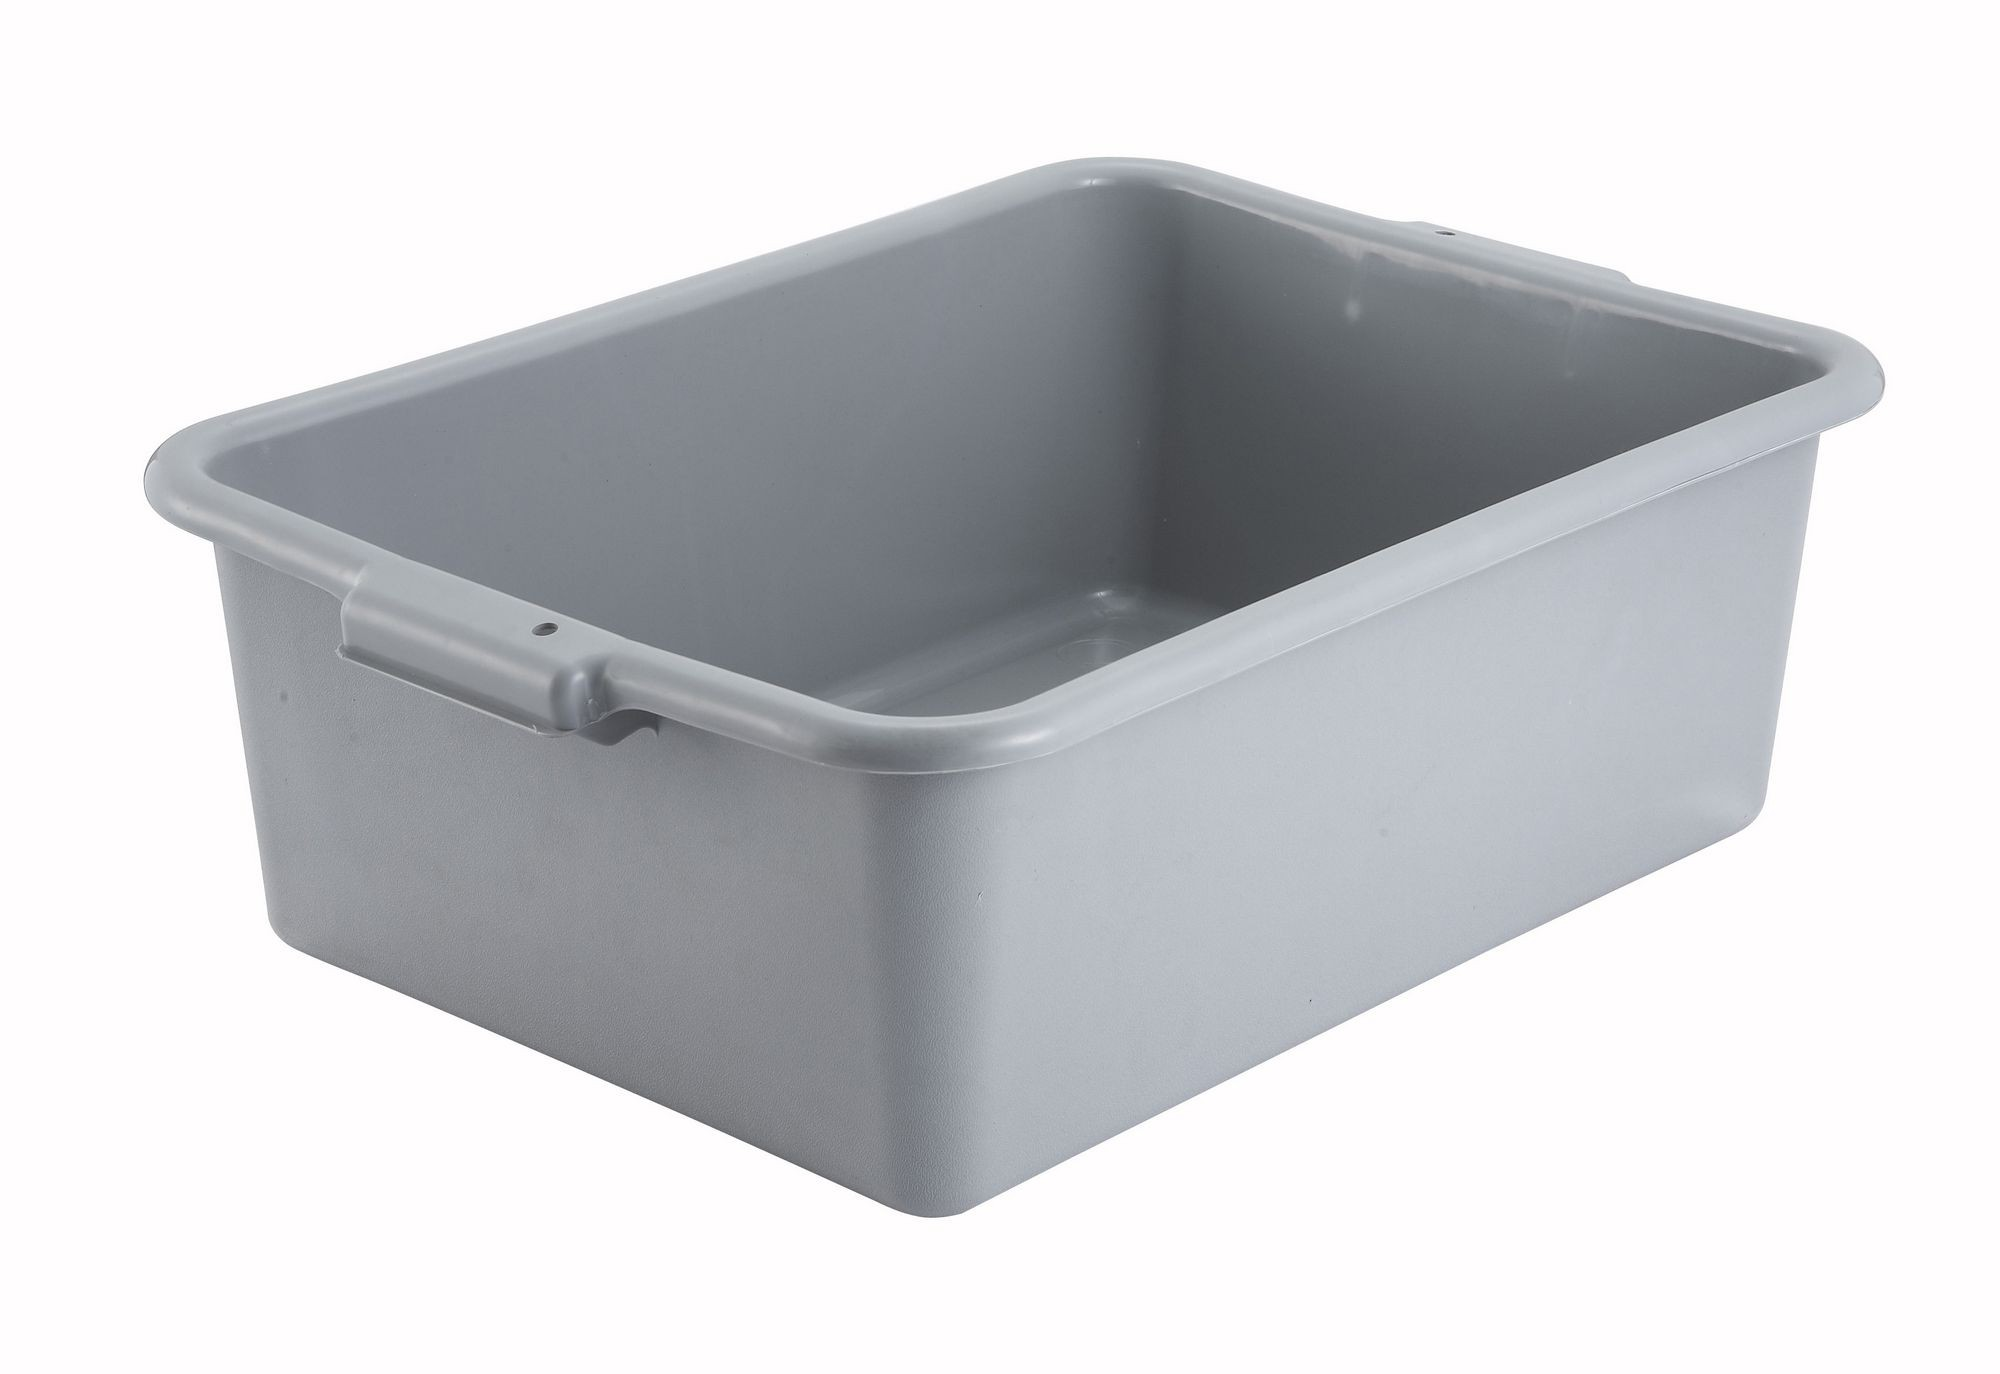 Grey Dish Box - 20-1/4 x 15-1/2 x 7 (Lid not included)